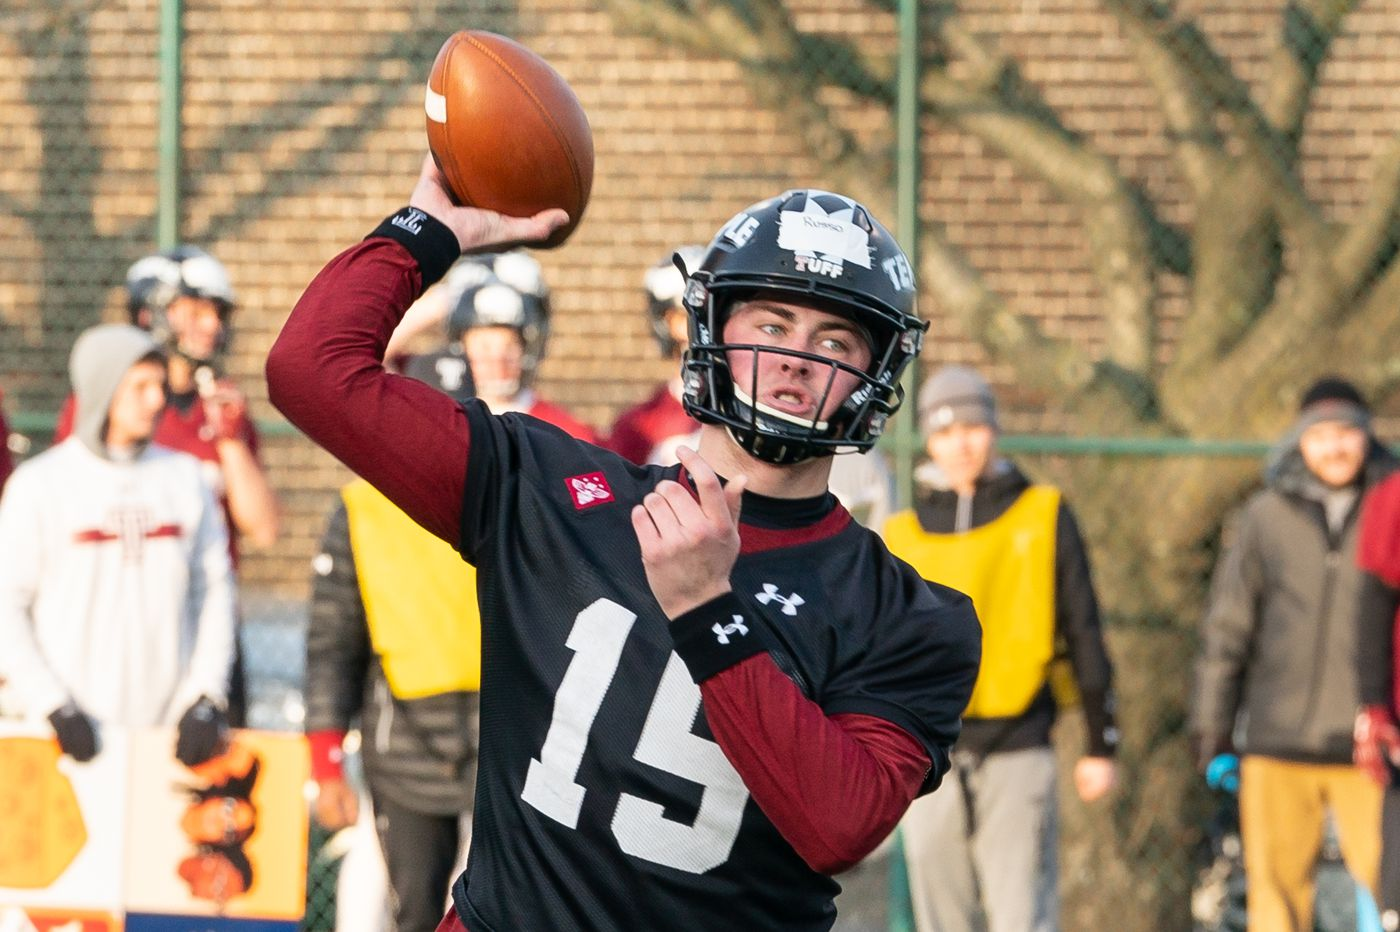 Temple QB Anthony Russo adding some muscle to his leadership role